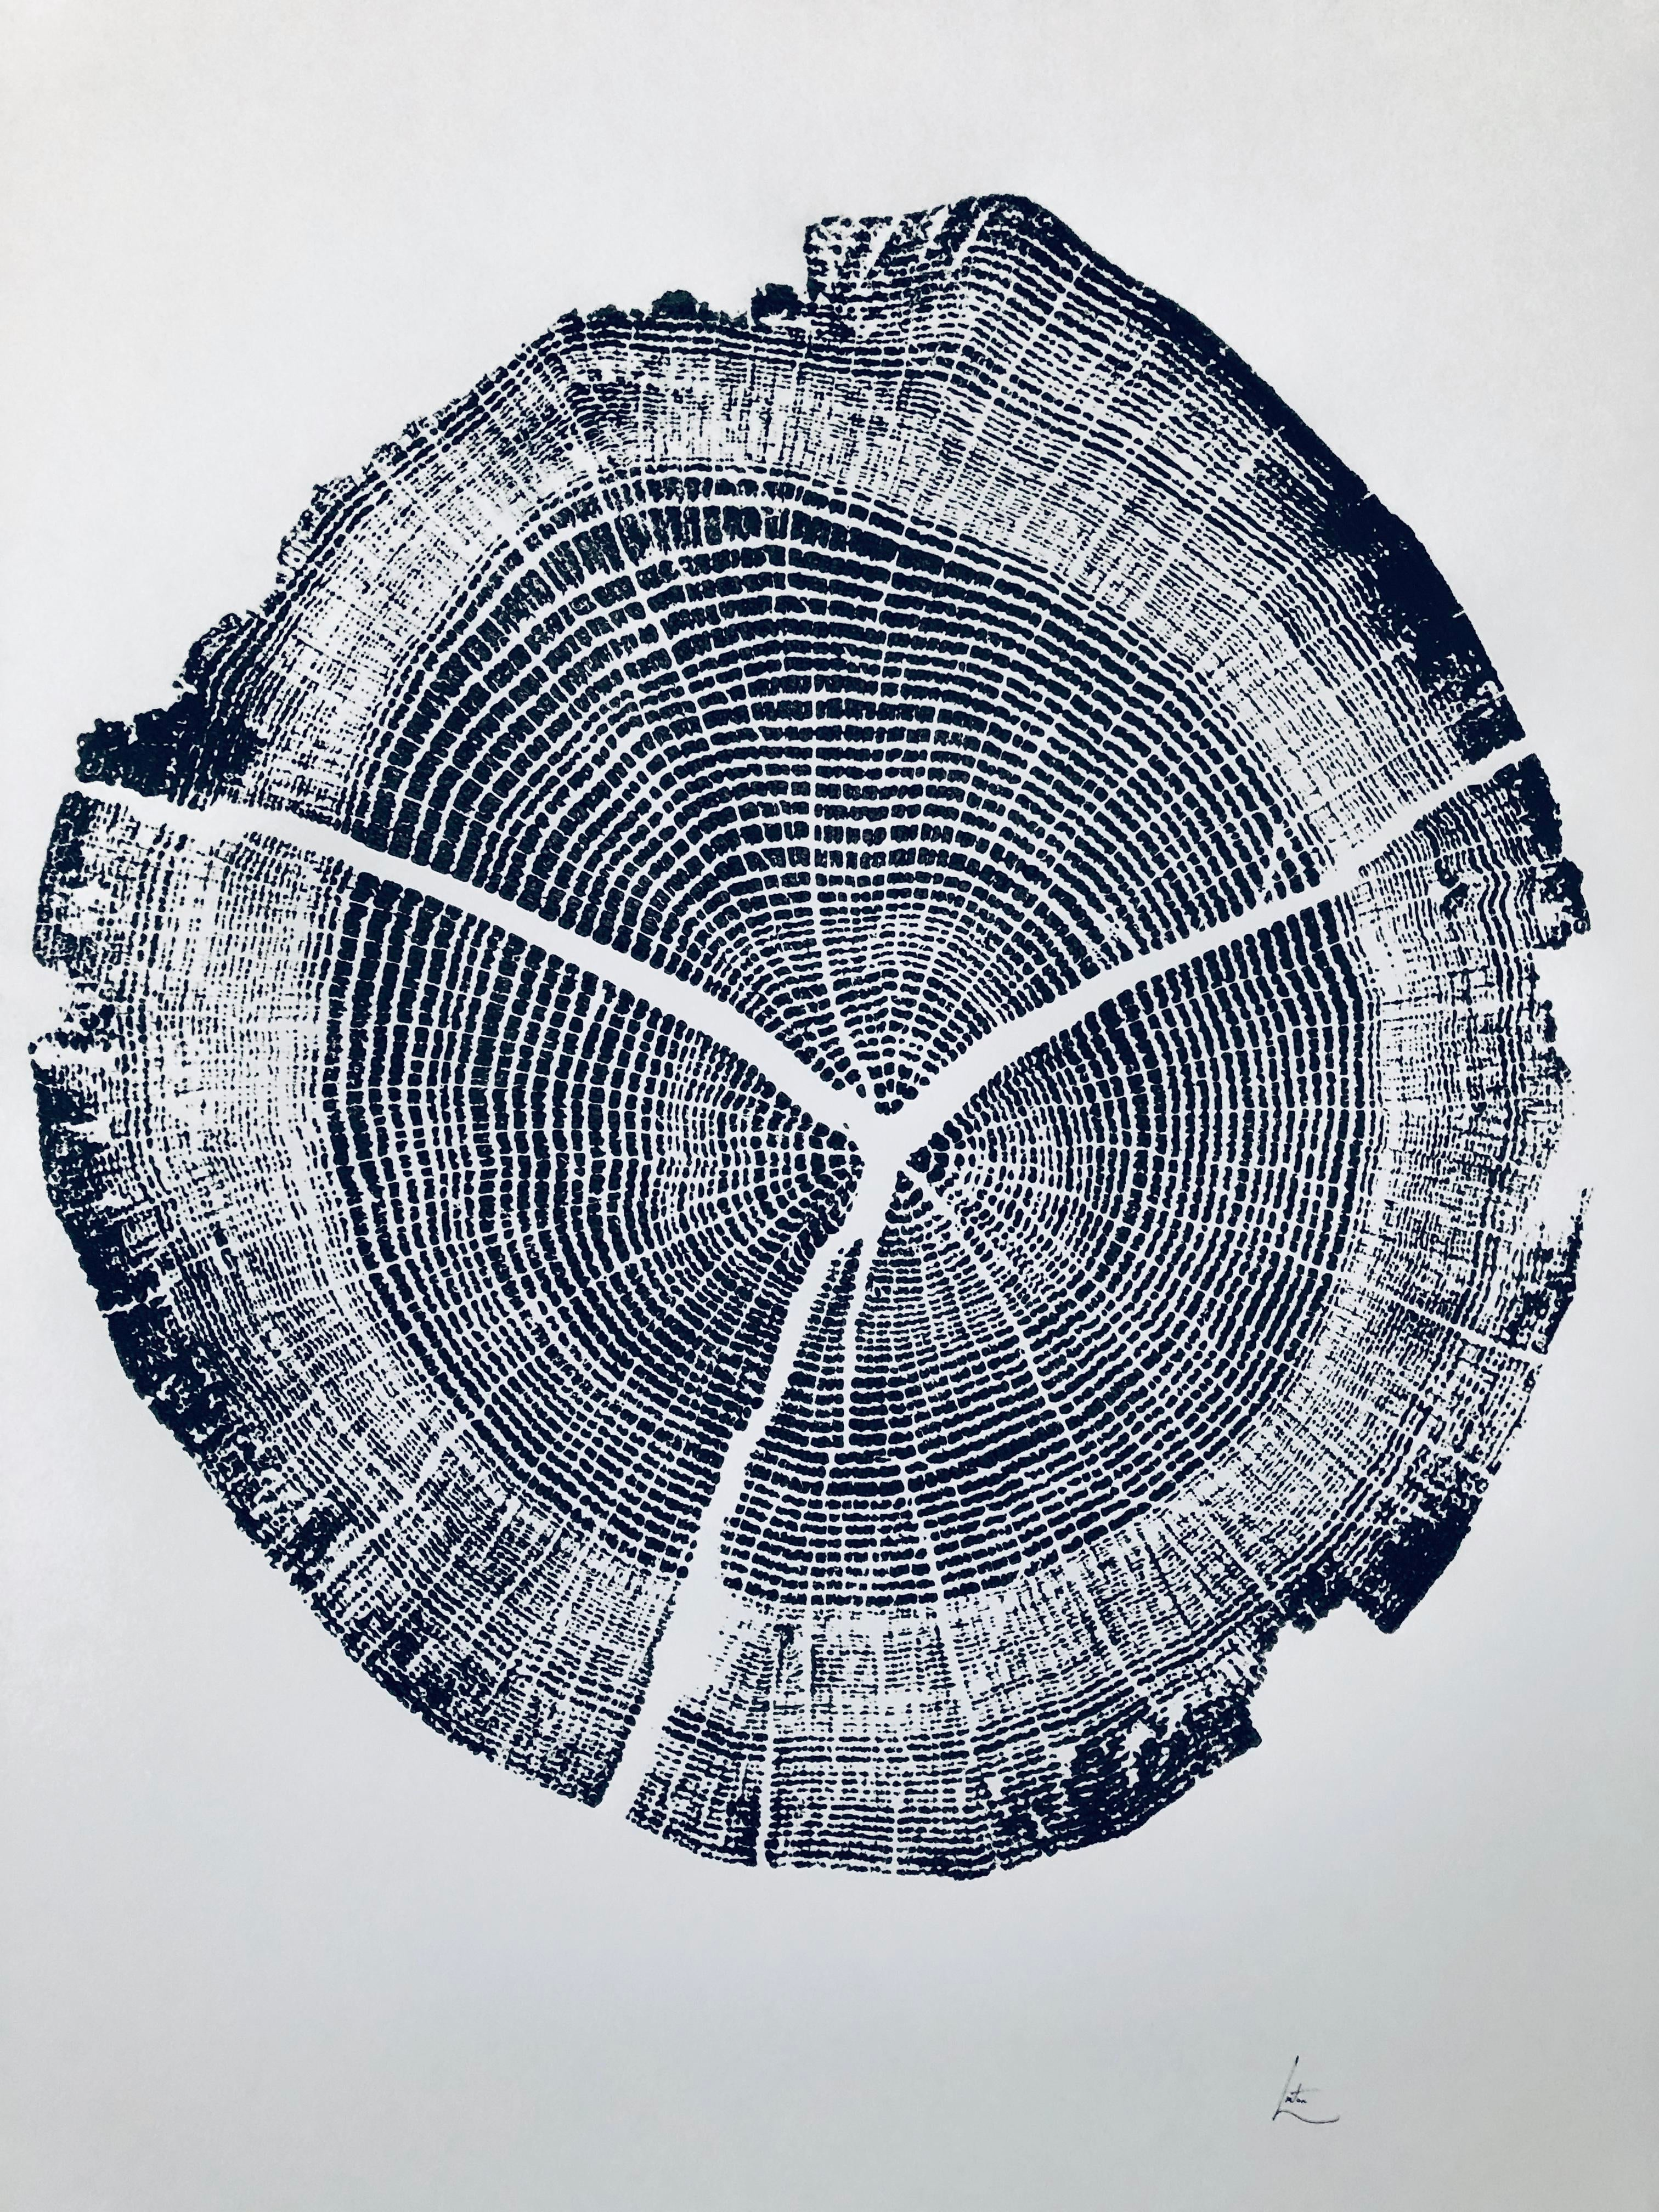 Walden Pond Tree Ring Print From Walden Pond Handmade Print By Erik Linton Chairish